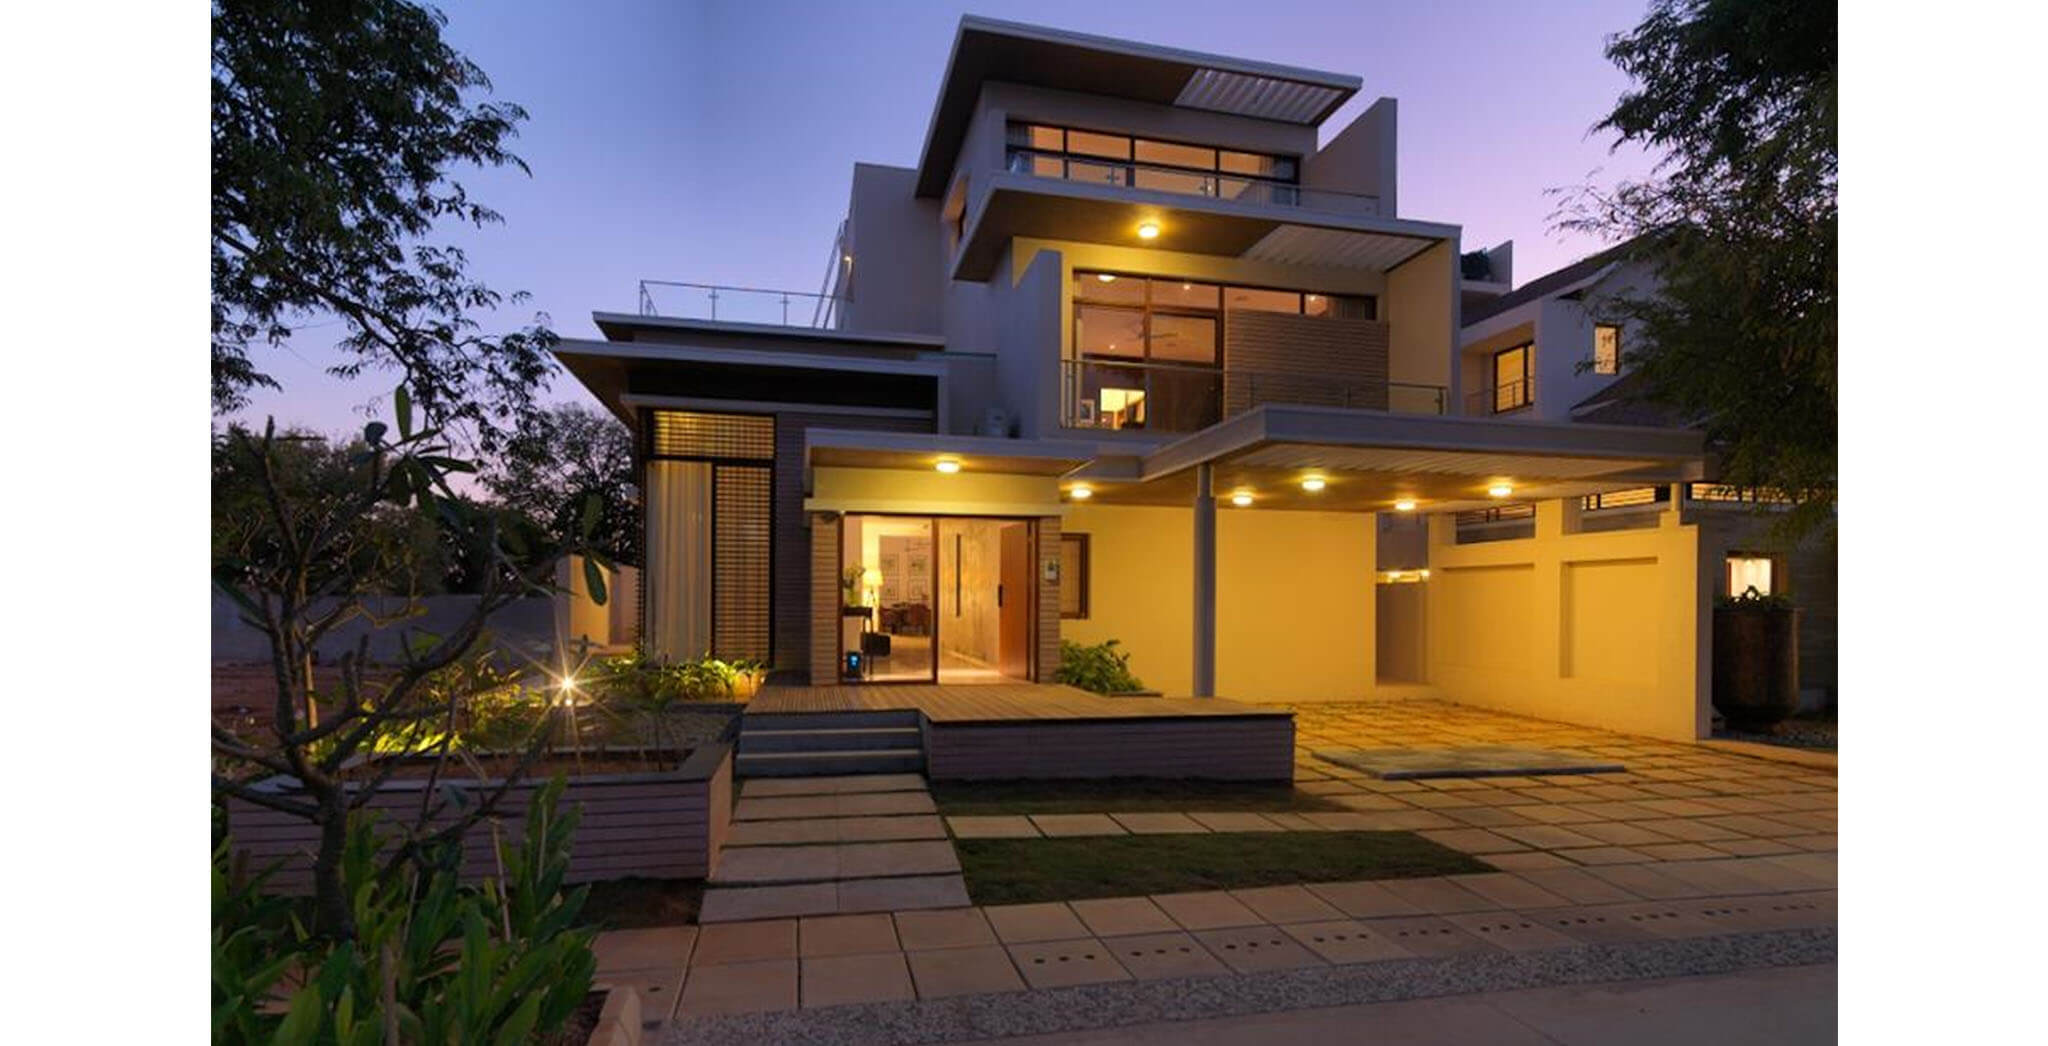 Oct 2018 - Signature Villas in Bangalore